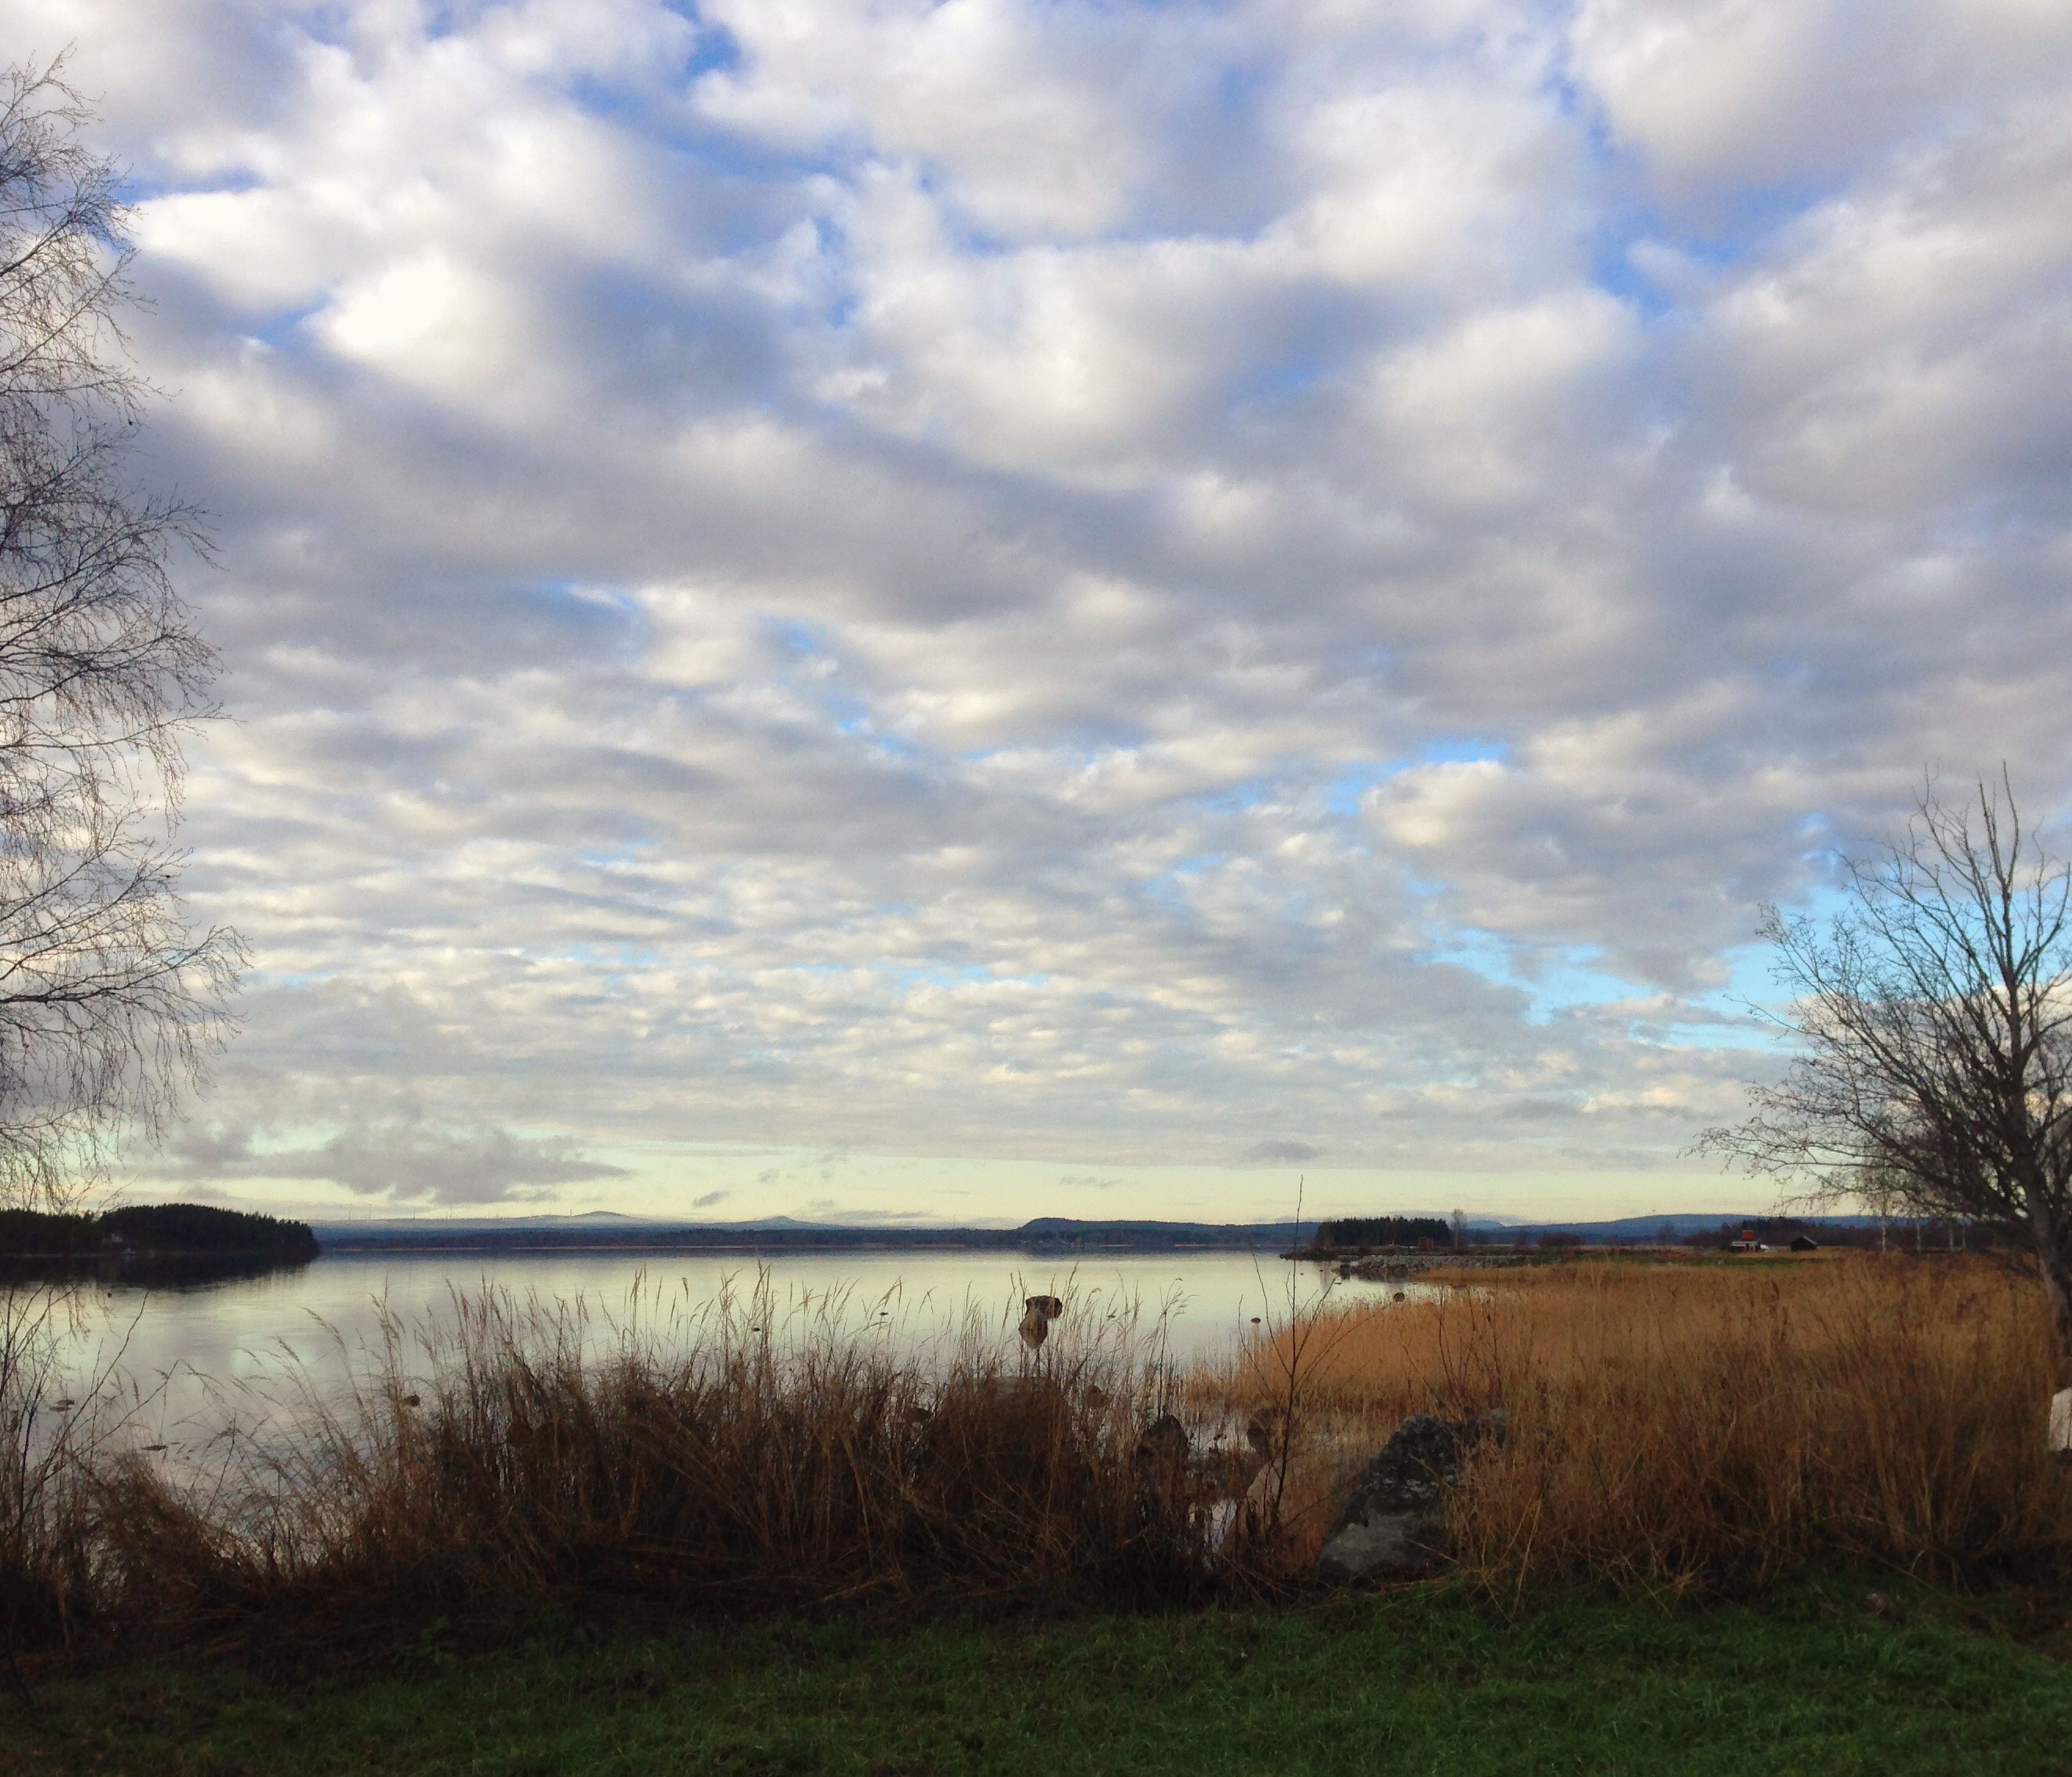 sky, tranquil scene, tranquility, water, cloud - sky, scenics, cloudy, grass, beauty in nature, lake, nature, cloud, landscape, field, tree, idyllic, plant, non-urban scene, growth, lakeshore